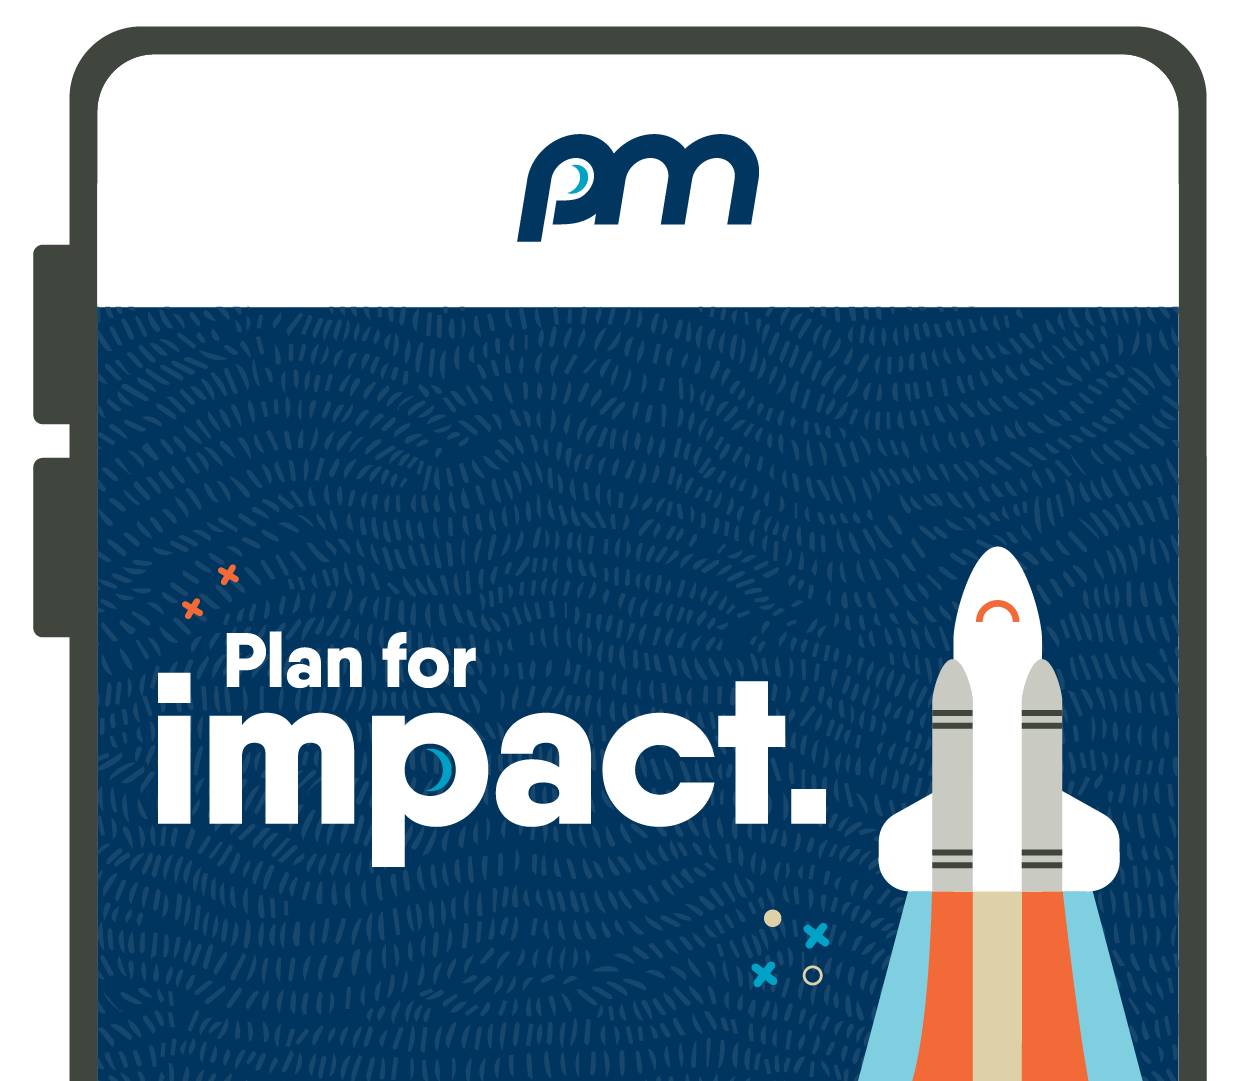 """Close-up illustration of a smart device displaying the words """"Plan for impact"""" and a rocketship on its screen."""